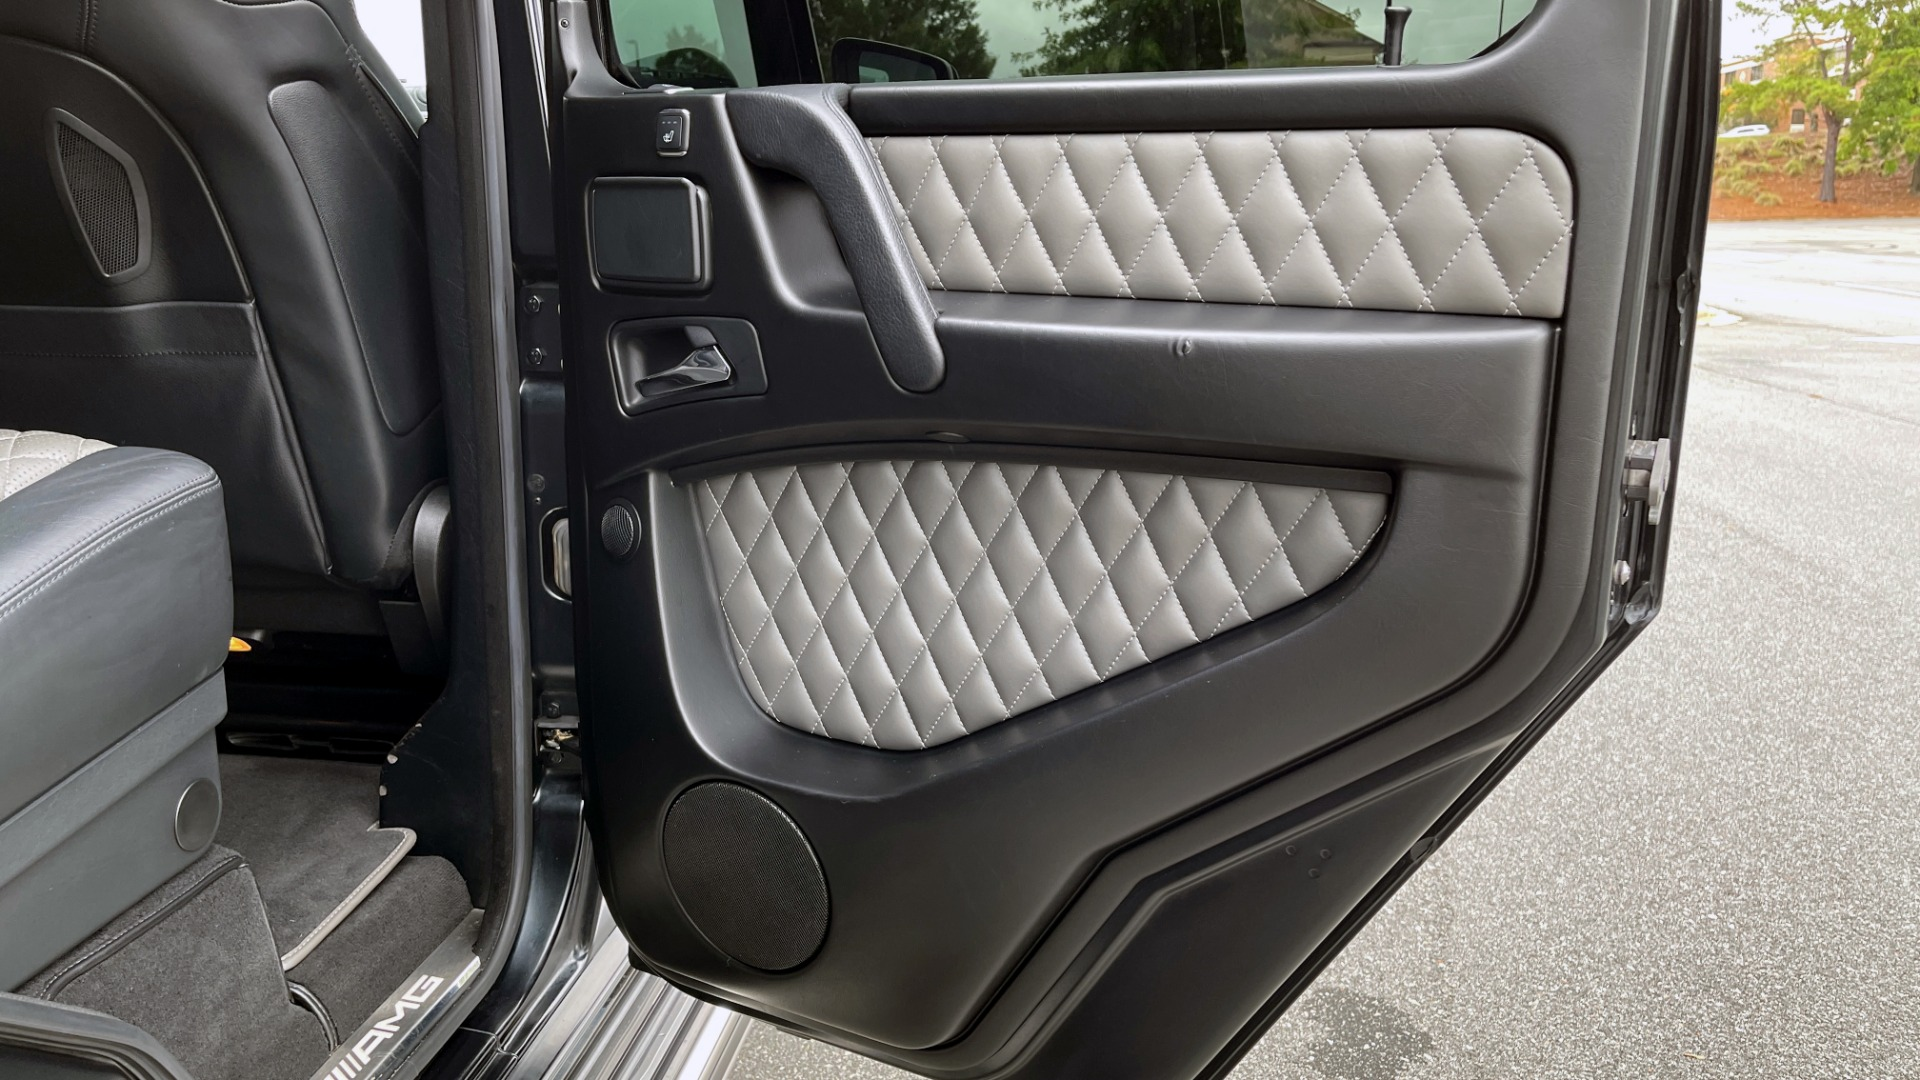 Used 2017 Mercedes-Benz G-CLASS AMG G 63 / DESIGNO PKG / NAV / SUNROOF / H/K SND / REARVIEW for sale $124,999 at Formula Imports in Charlotte NC 28227 46